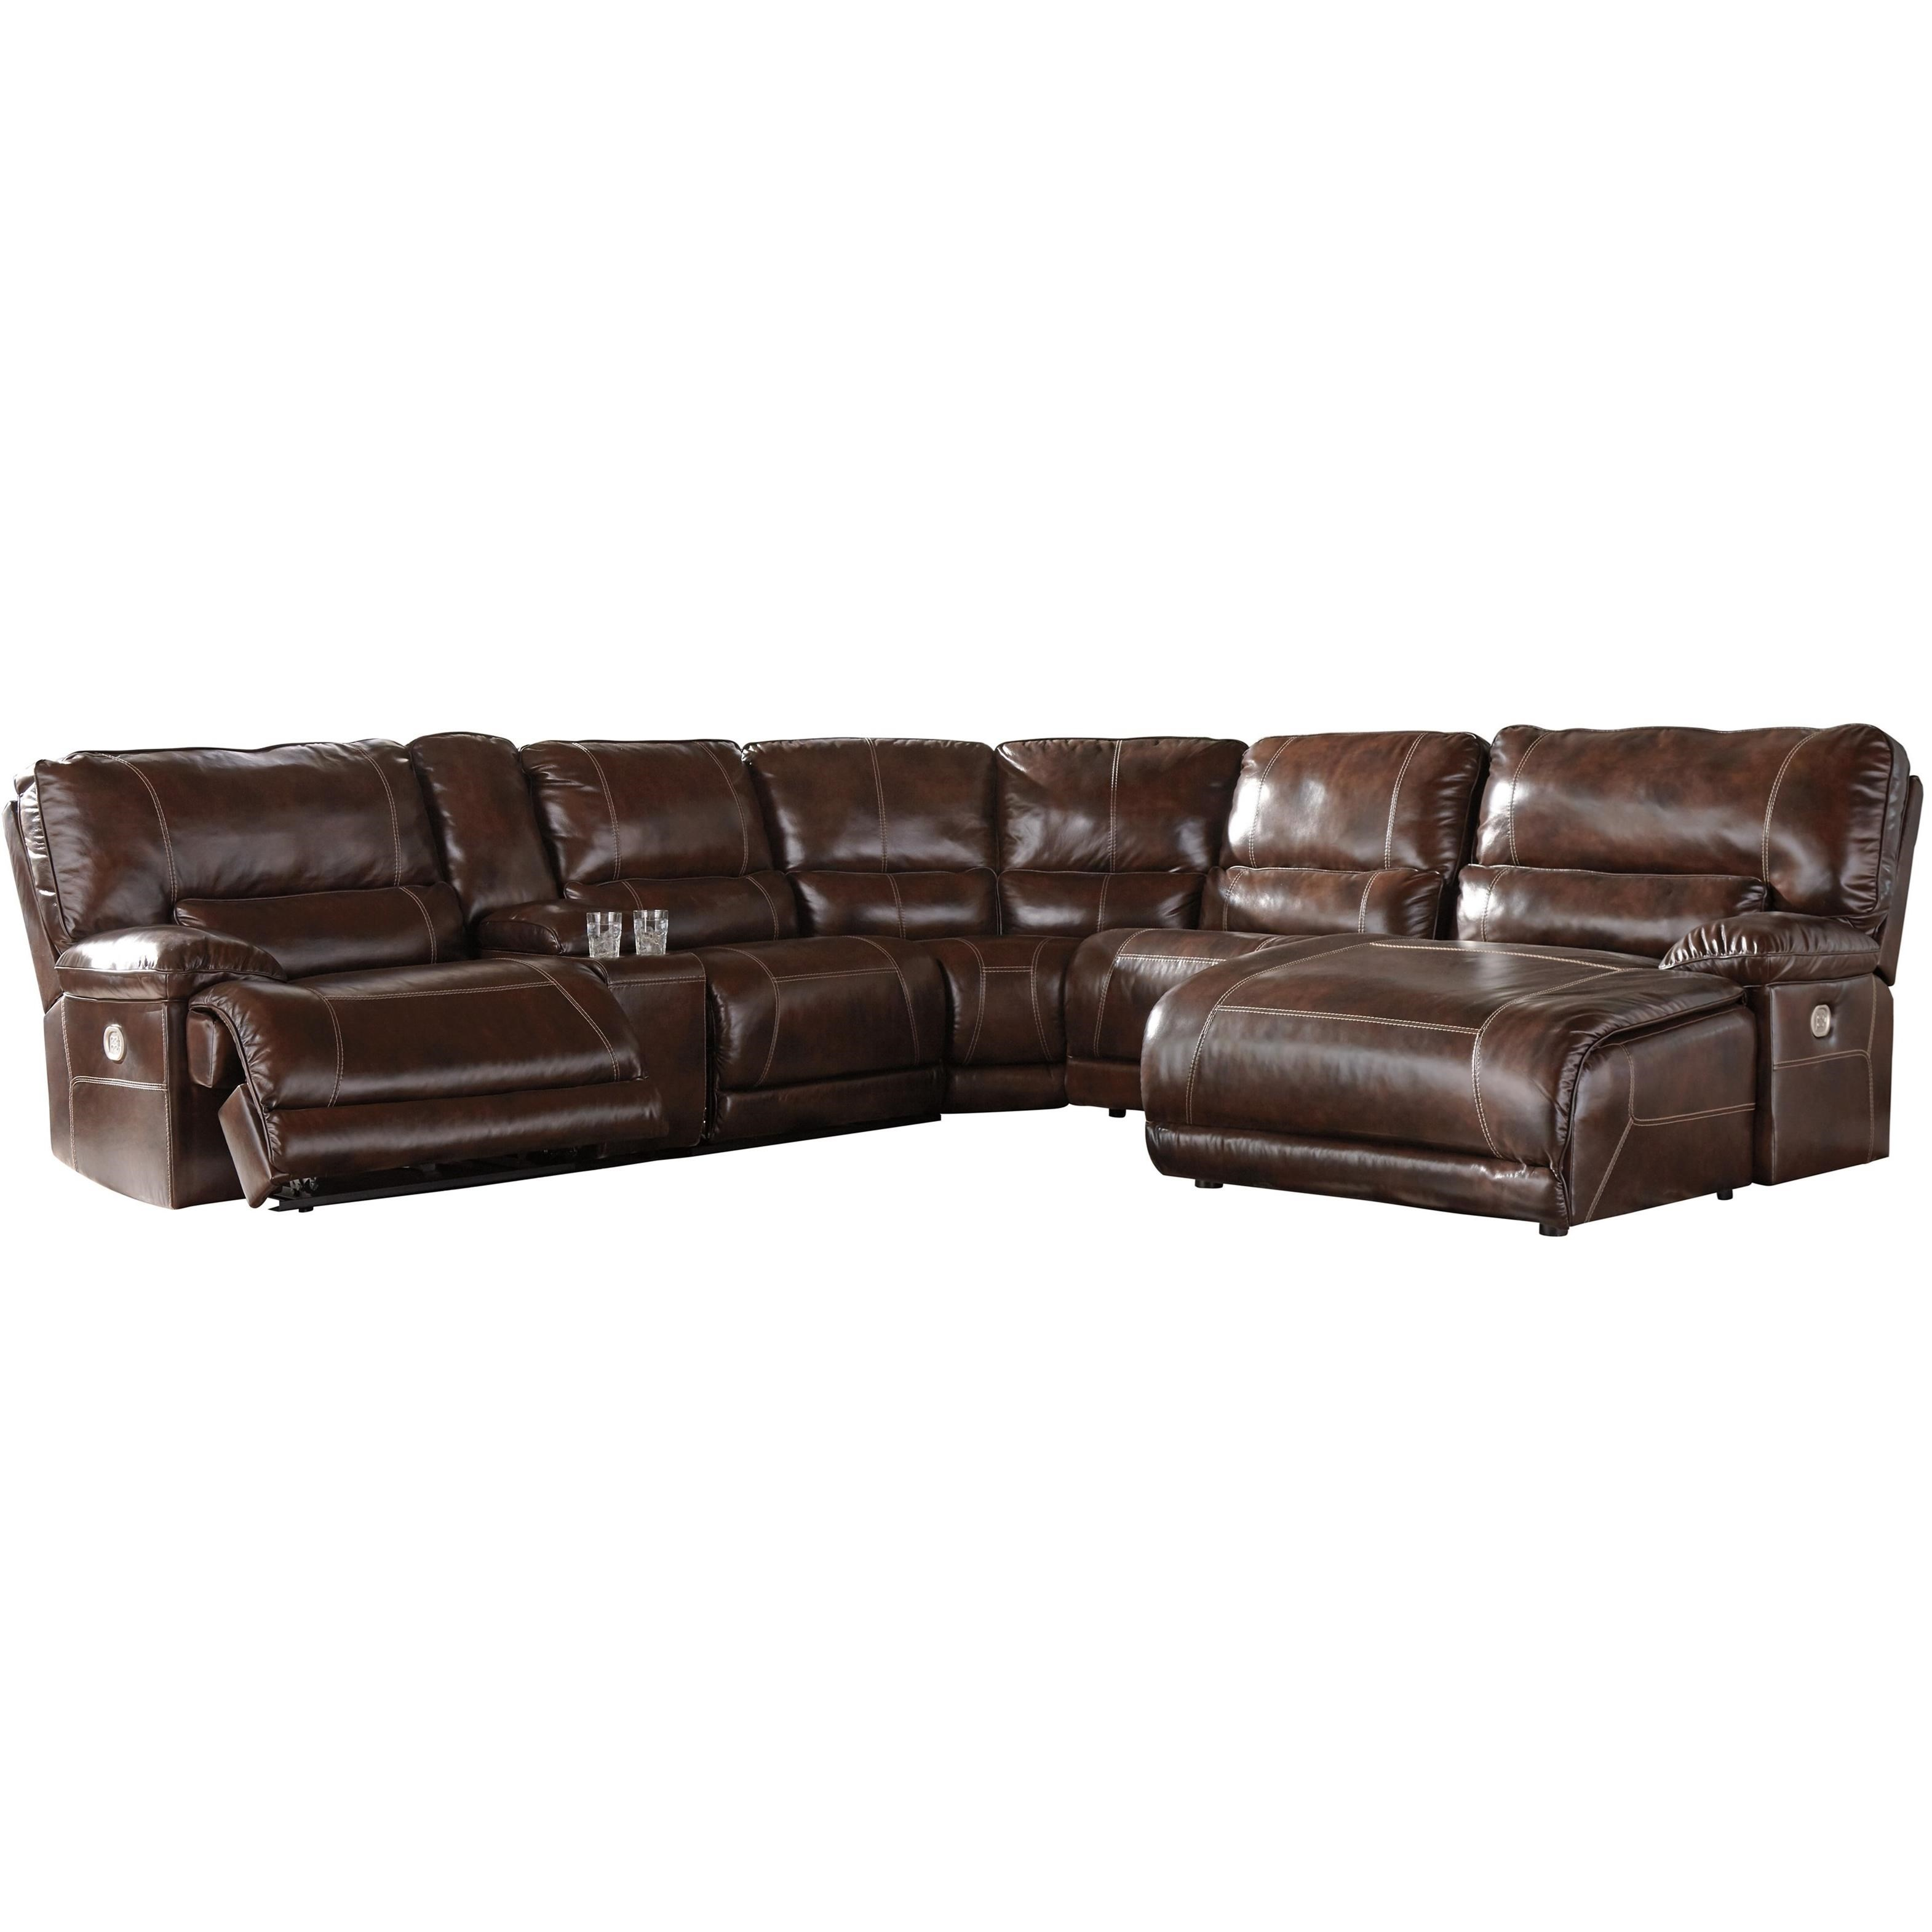 Signature Design by Ashley Killamey 6-Piece Power Reclining Sectional - Item Number: 3880158+57+19+77+46+97